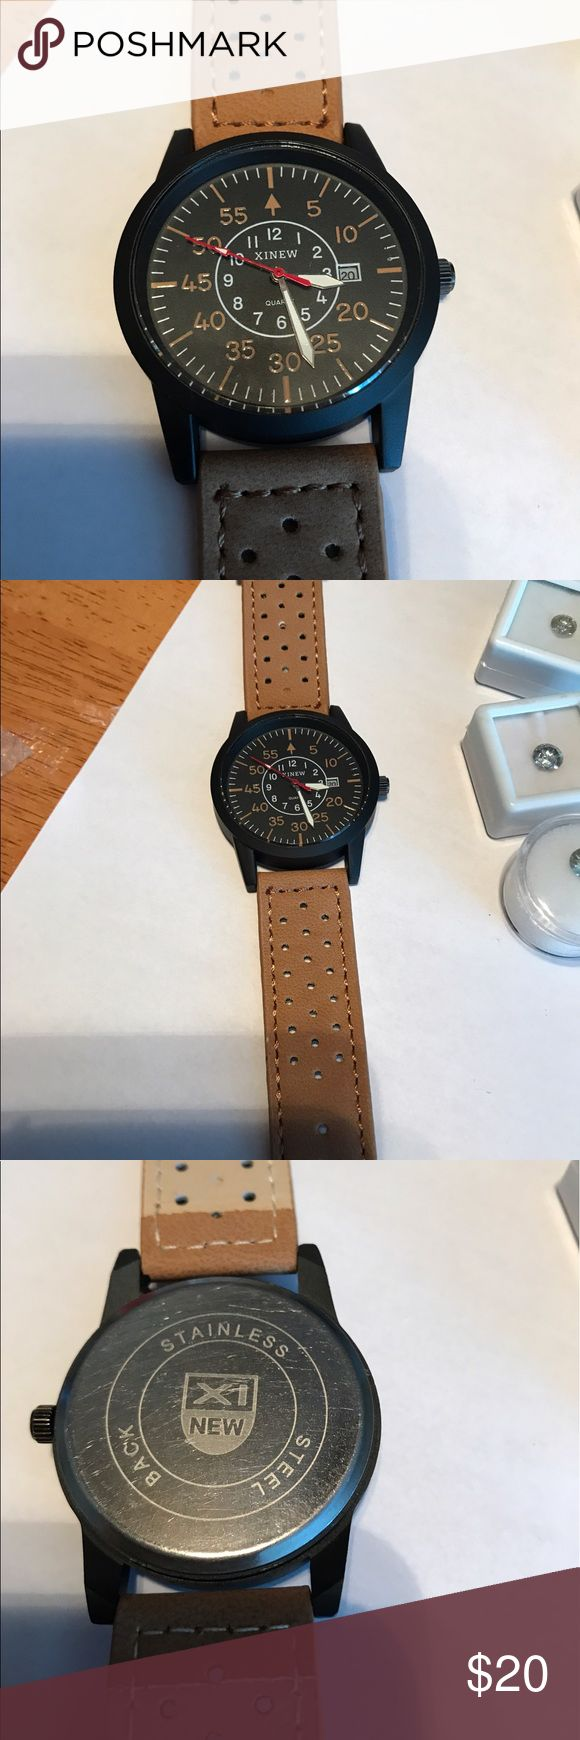 Men's watch Really nice men's watch black face and tan band Accessories Watches